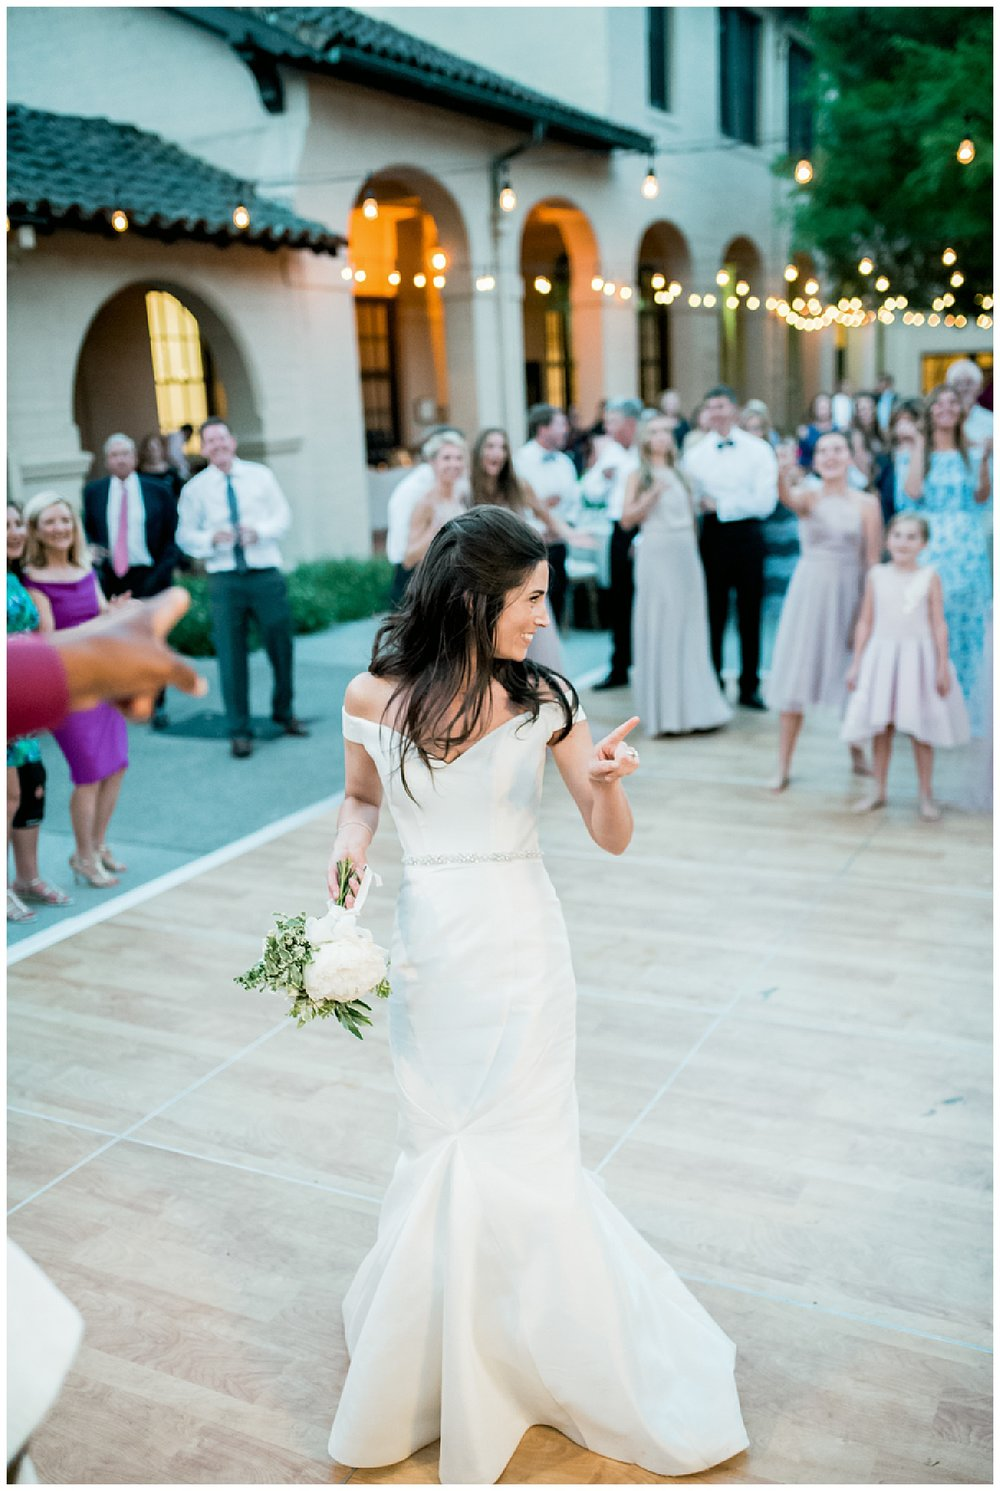 Janine_Licare_Photography_San_Francisco_Wedding_Photographer_0171.jpg